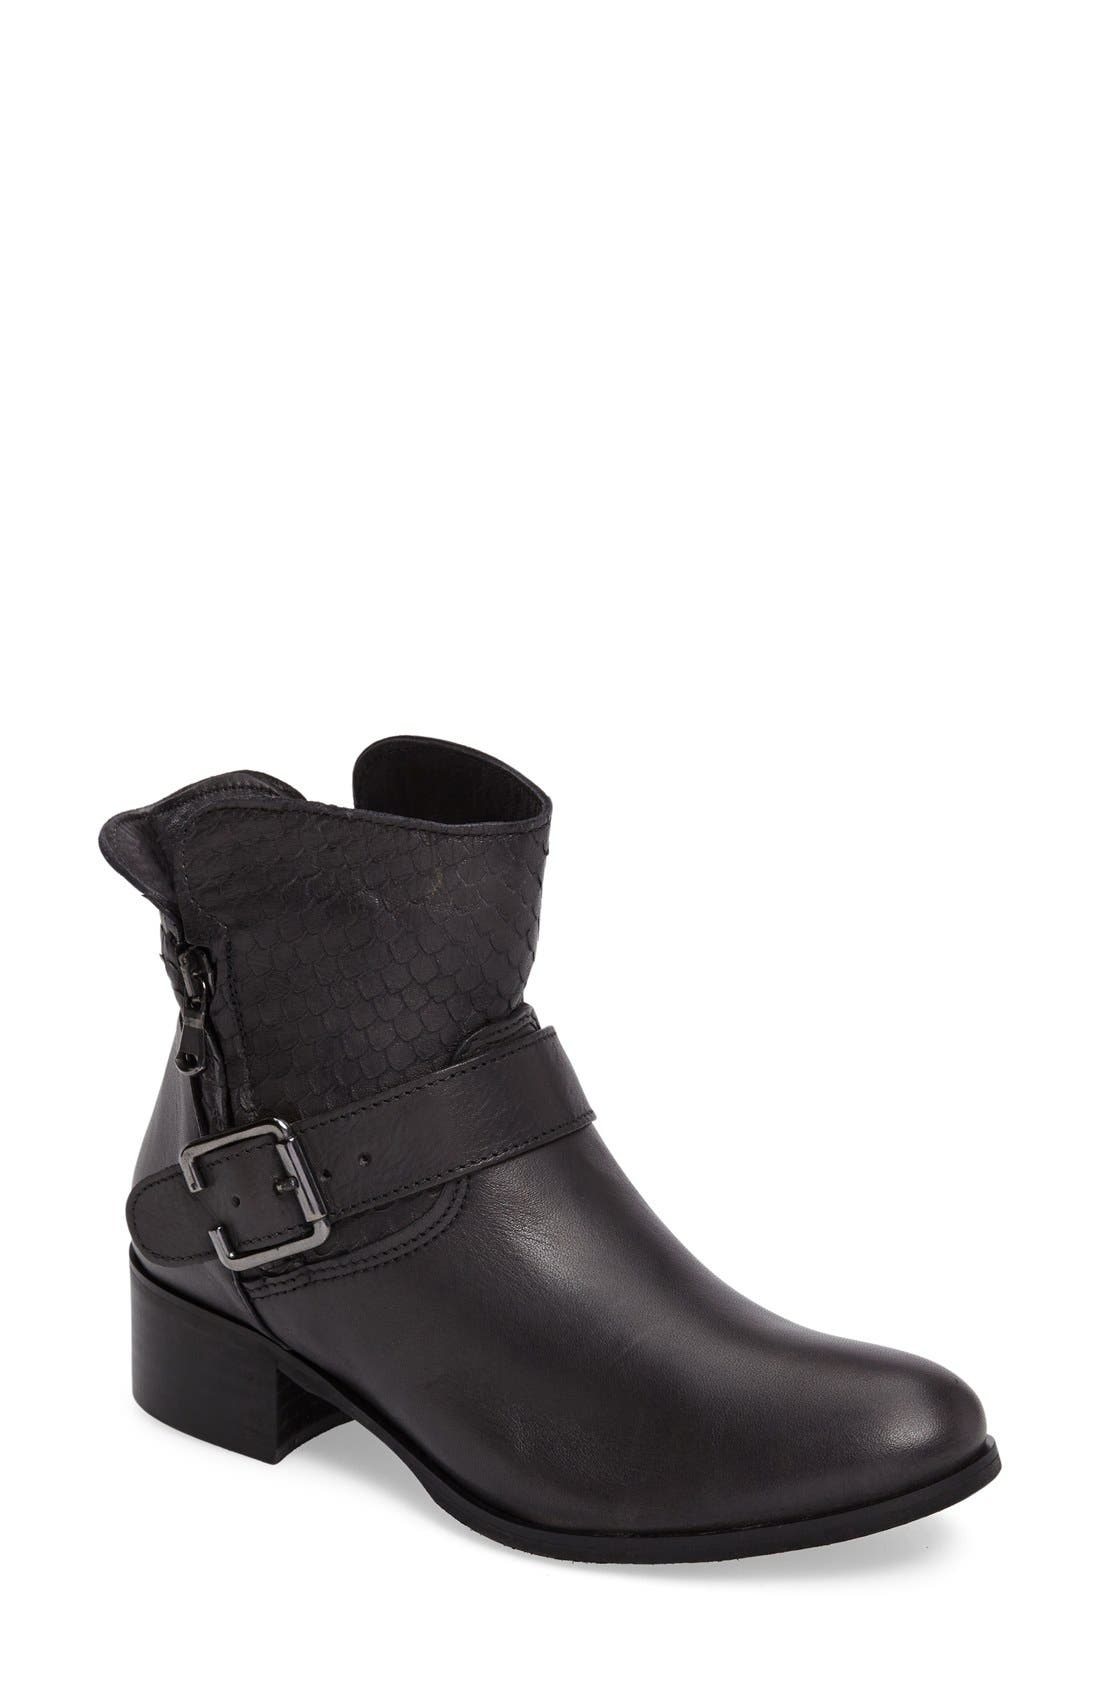 Main Image - CrossTown Chiara 22 Textured Buckle Strap Bootie (Women)